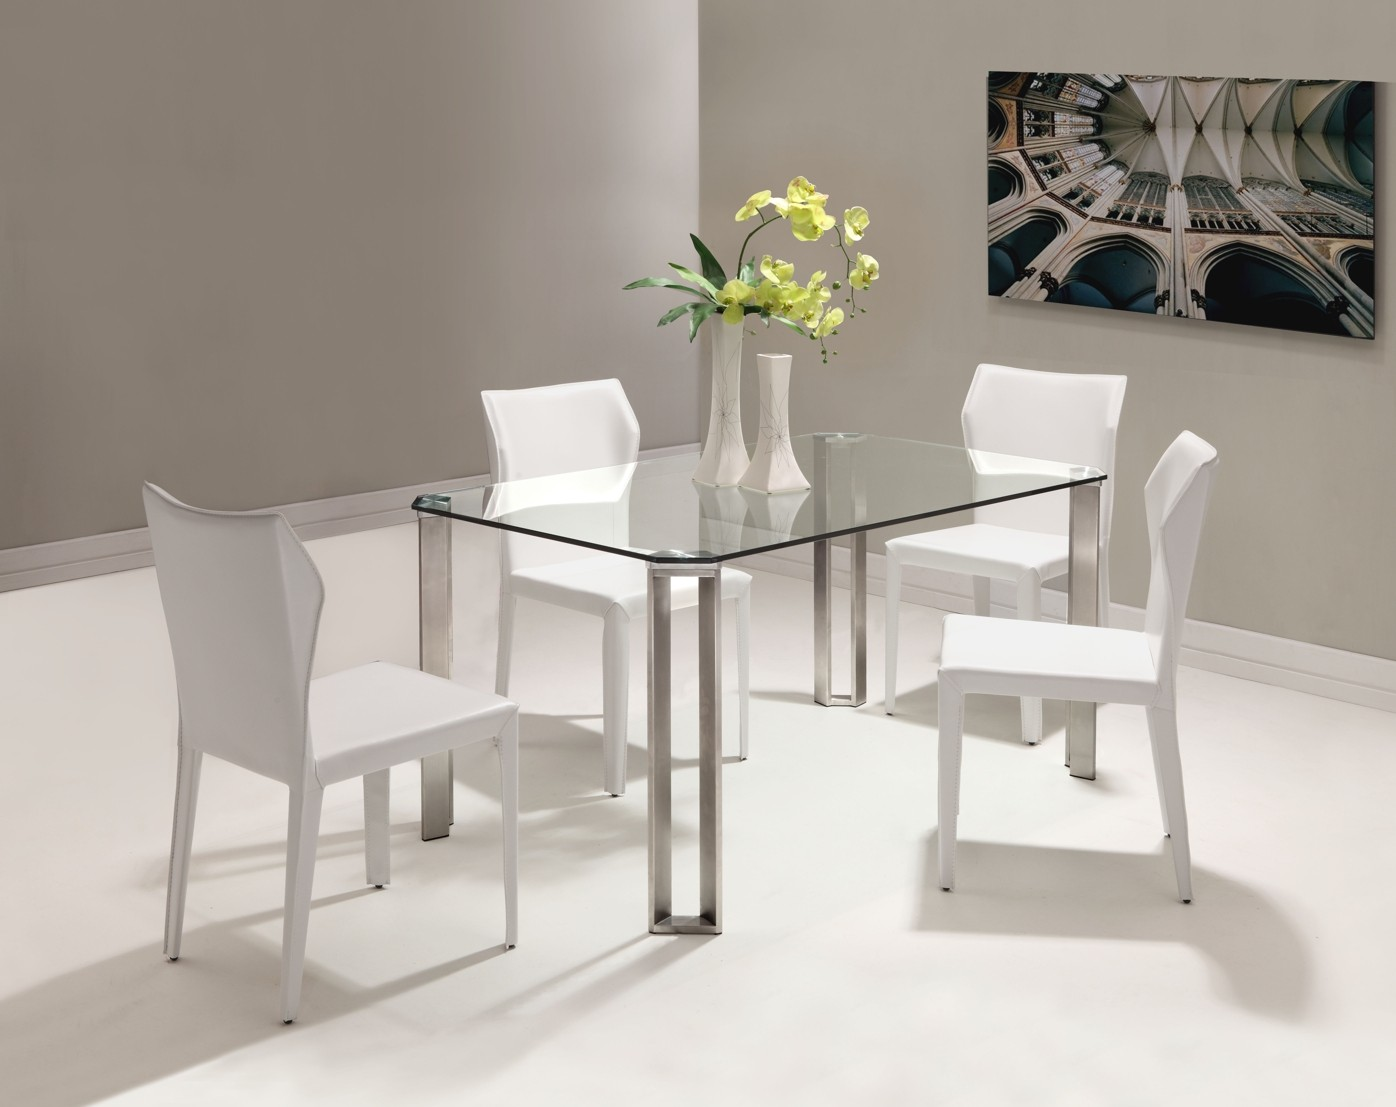 The Small Rectangular Dining Table That is Perfect for  : wonderful small rectangular dining table glass top with four white chairs and striking table centerpiece plus white flooring and picture on wall decoration from homesfeed.com size 1396 x 1107 jpeg 150kB